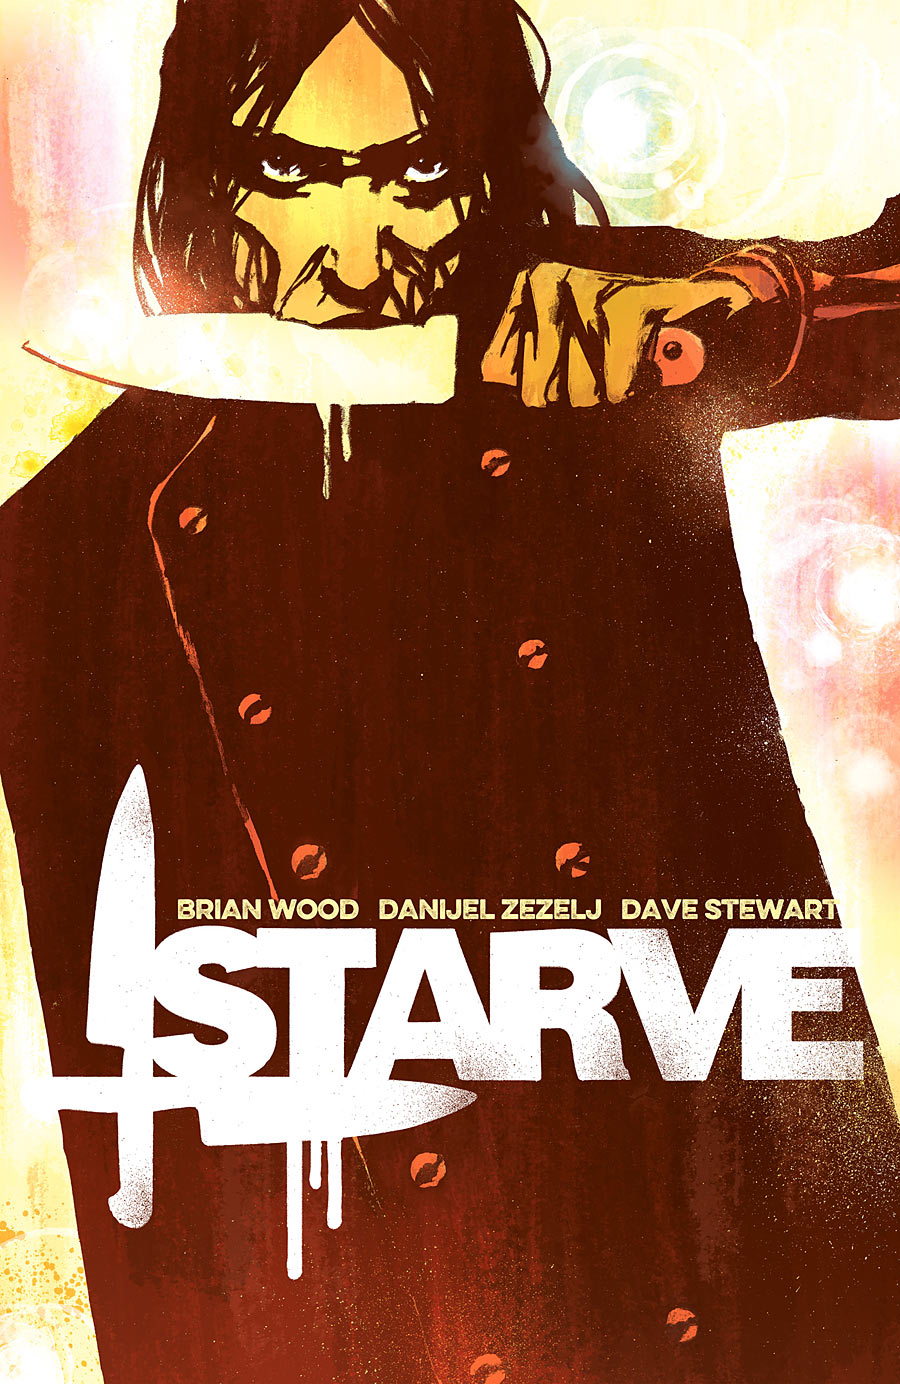 Brian Wood, Danijel Zezelj, and Dave Stewart Starve is set in a future where celebrity chefs are royalty.